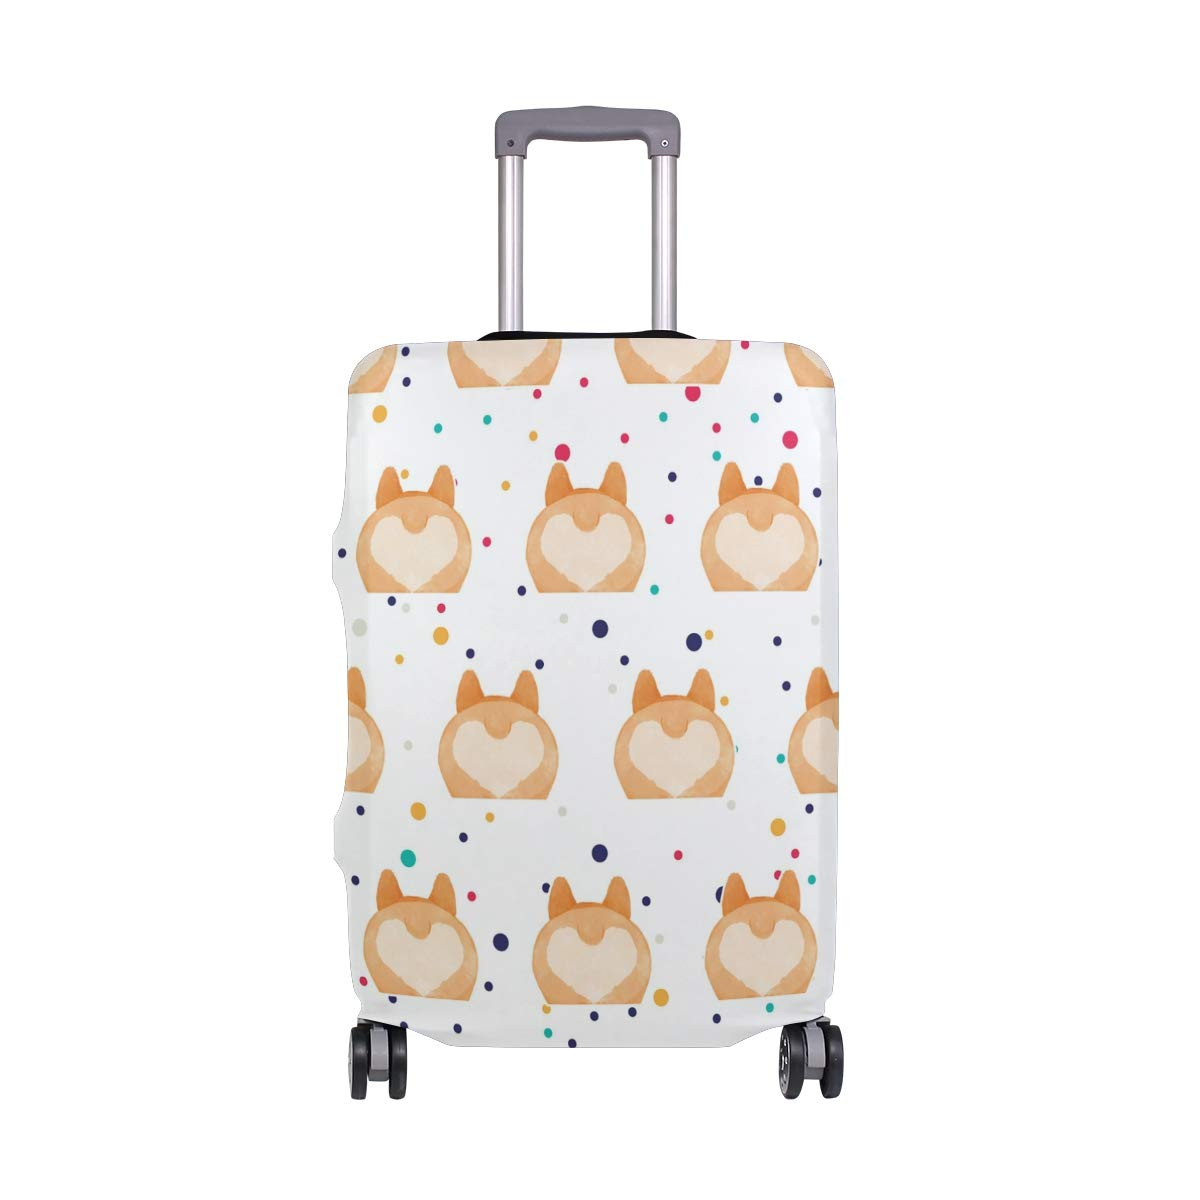 Corgi Butt Love Travel Luggage Cover - Suitcase Protector HLive Spandex Dust Proof Covers with Zipper, Fits 18-32 inch